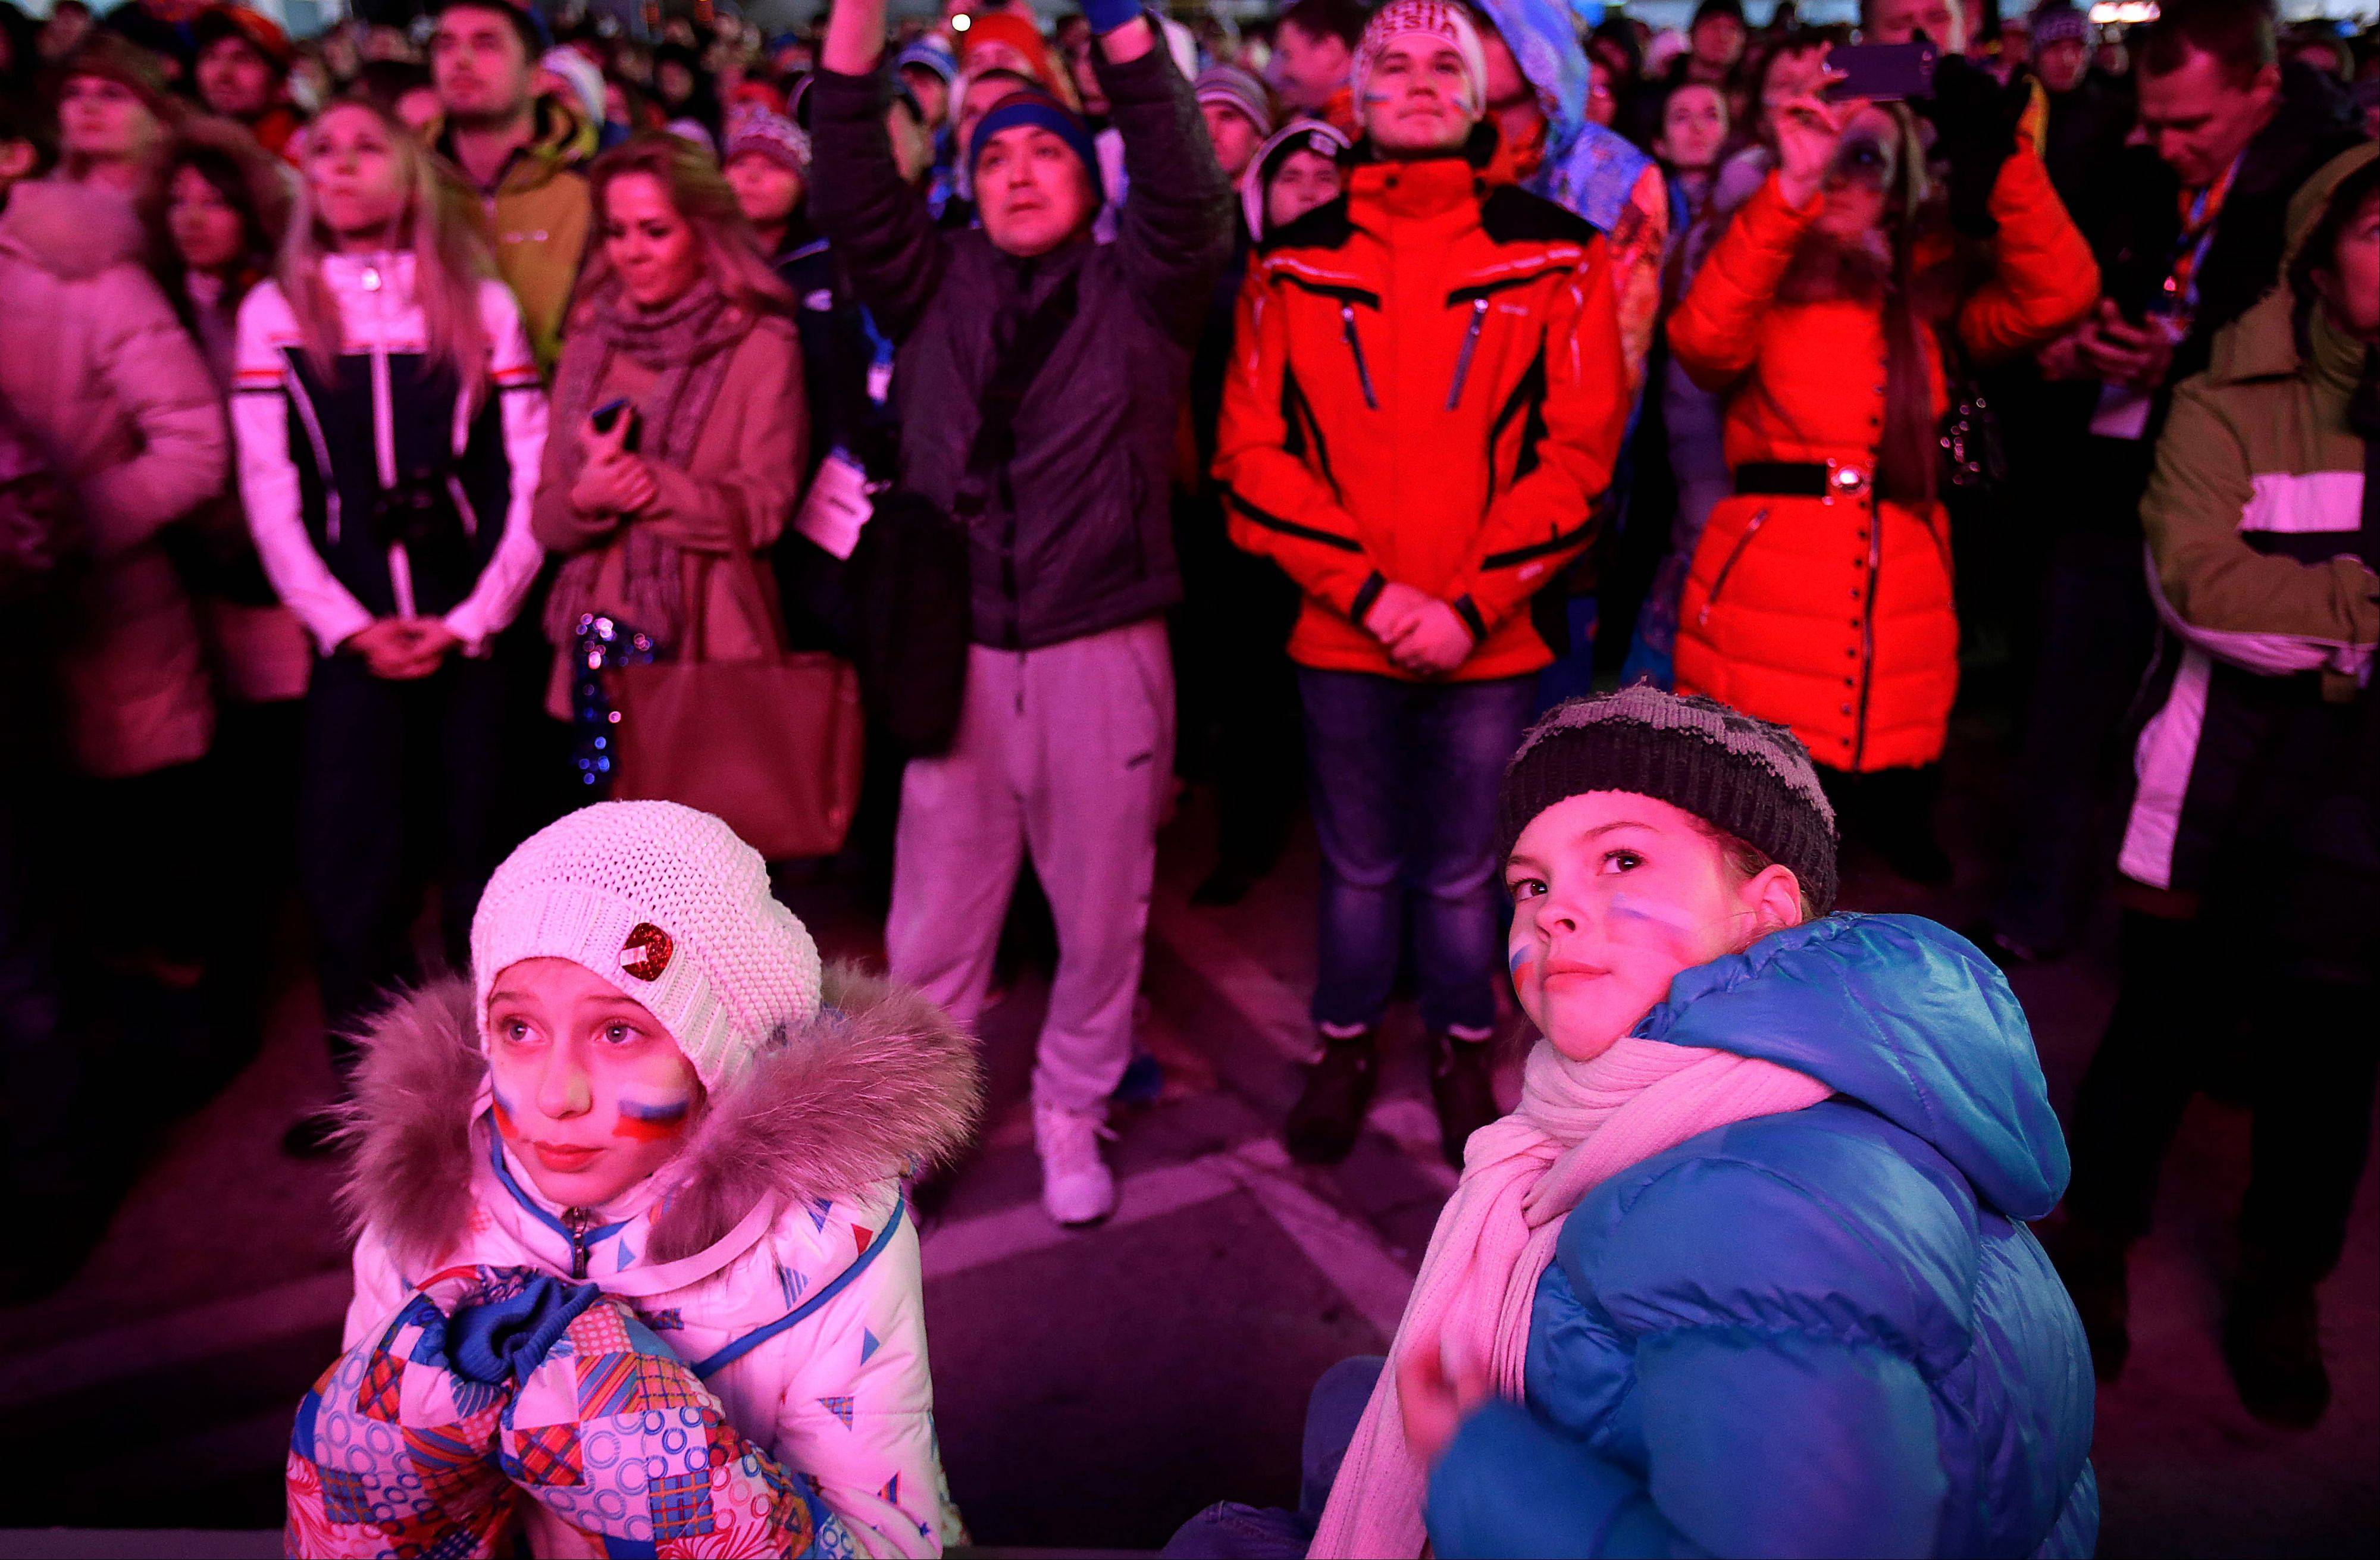 Young Russian girls watch intensely as the live telecast of the 2014 Winter Olympics opening ceremony is broadcast on giant screens, Friday, Feb. 7, 2014, in downtown Sochi, Russia.